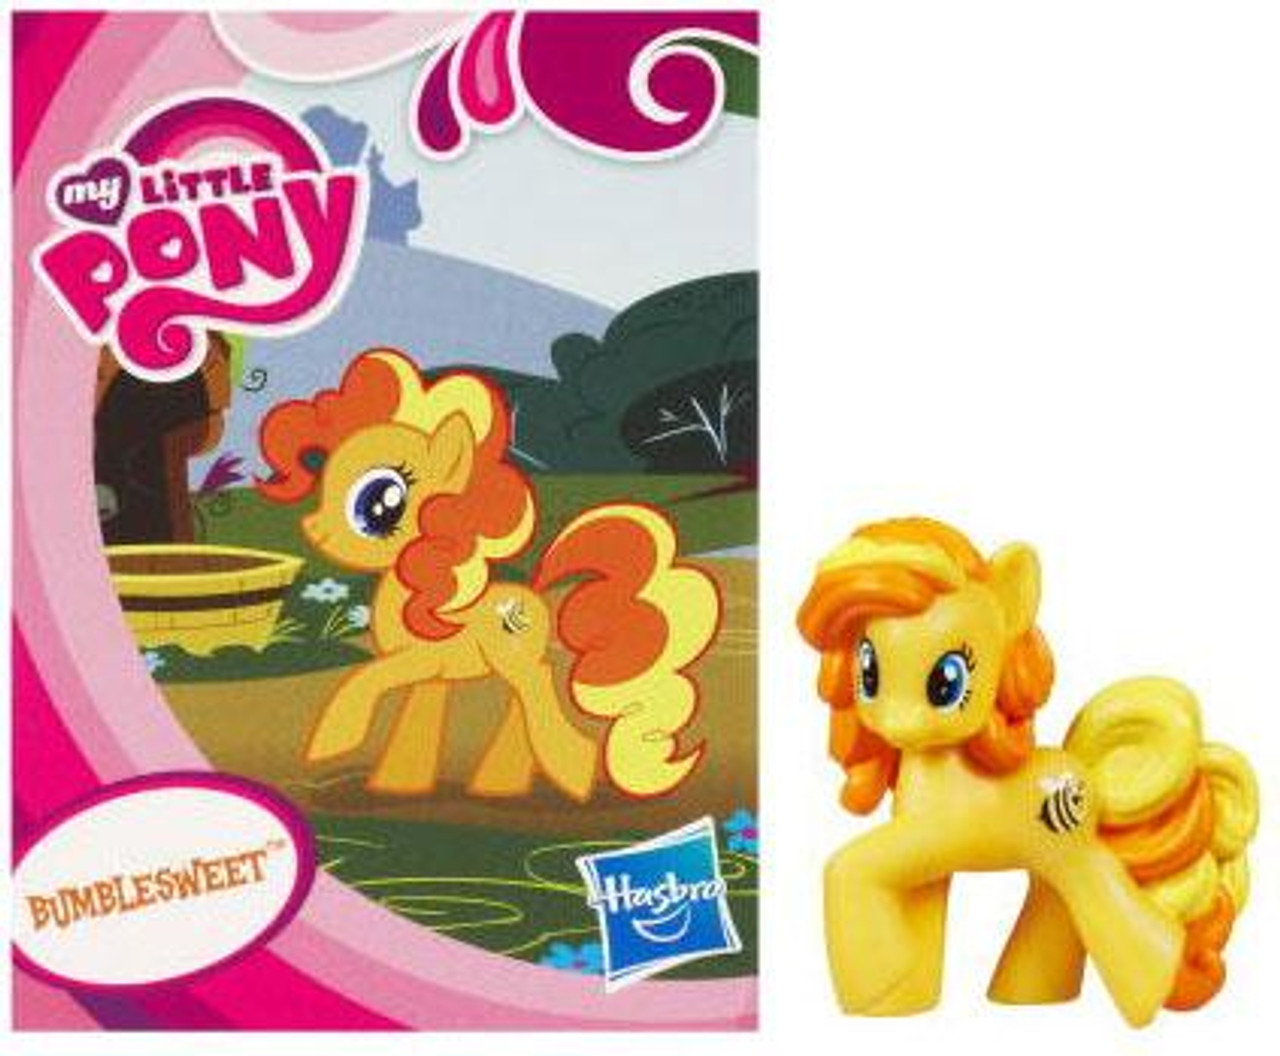 My Little Pony Bumblesweet 2-Inch PVC Figure